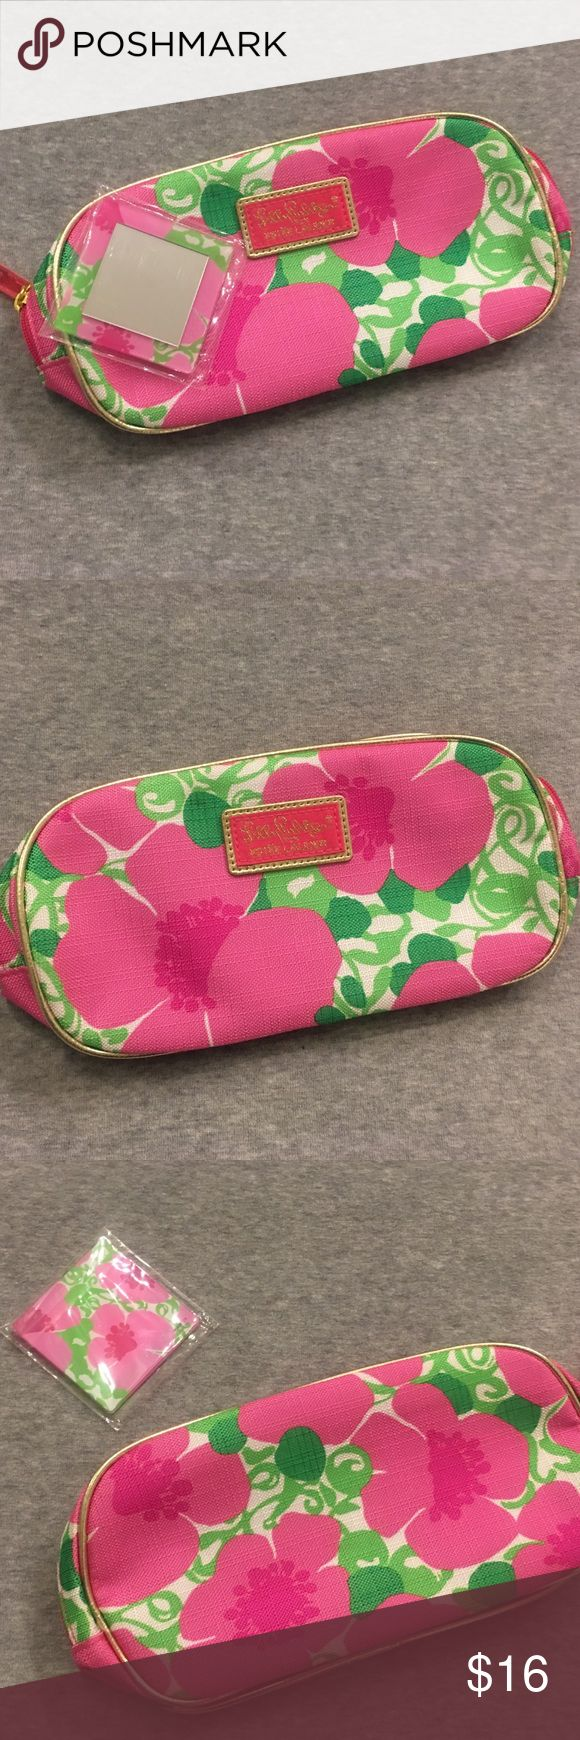 Lilly Pulitzer for Estee Lauder makeup bag! Lilly Pulitzer for Estee Lauder makeup bag with mirror (brand new). Lilly Pulitzer for Estee Lauder Bags Cosmetic Bags & Cases